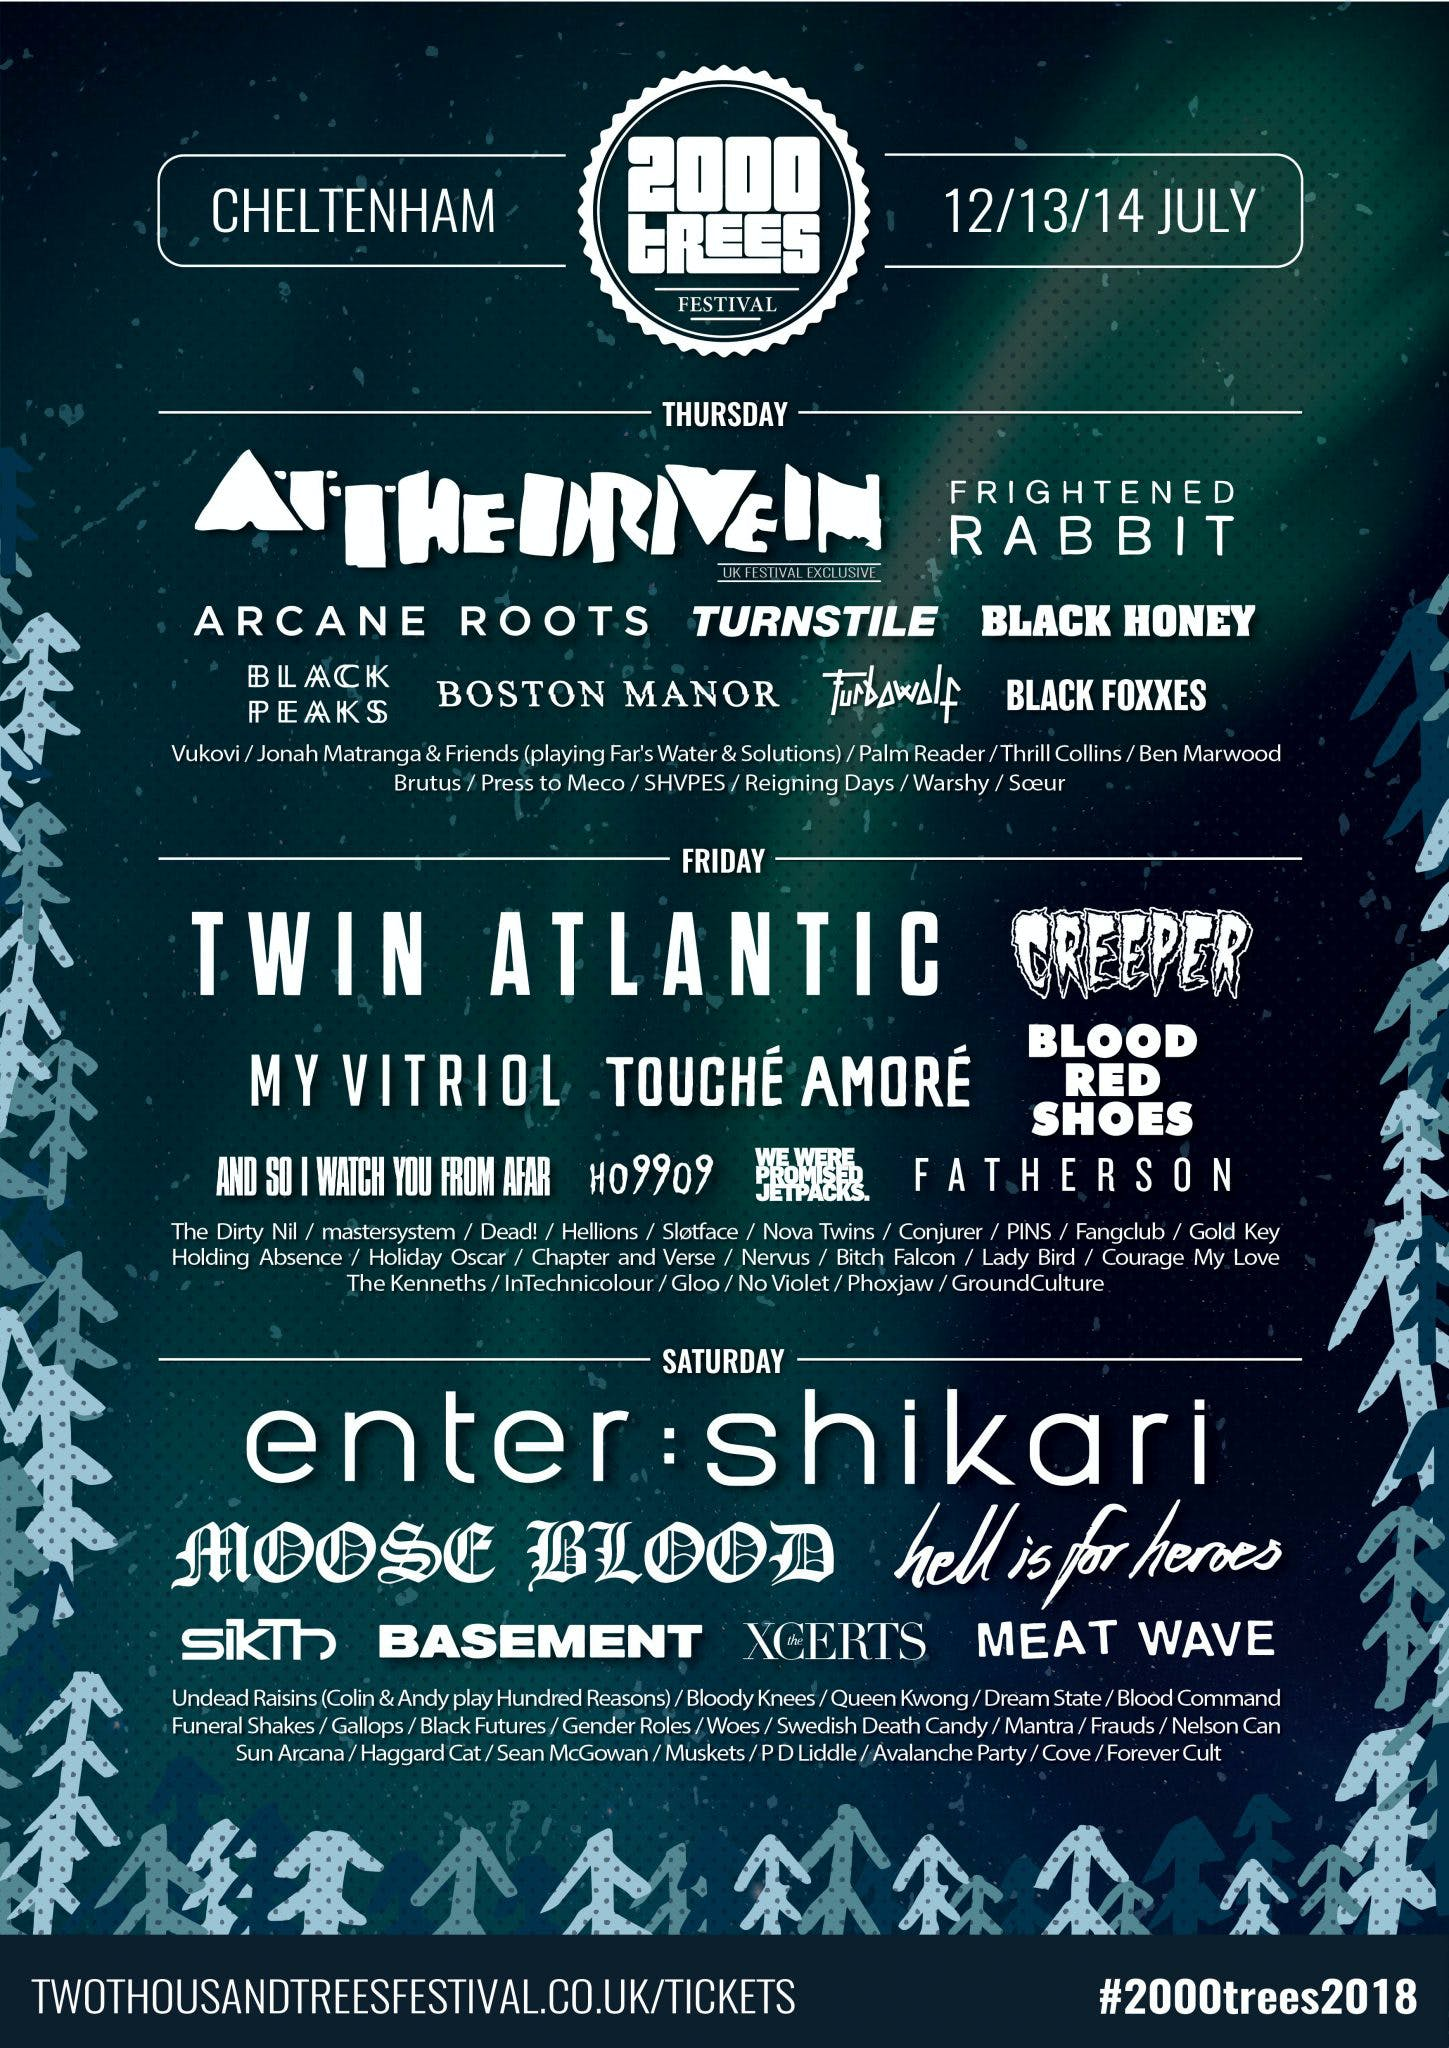 2000Trees May 2018 Announcement